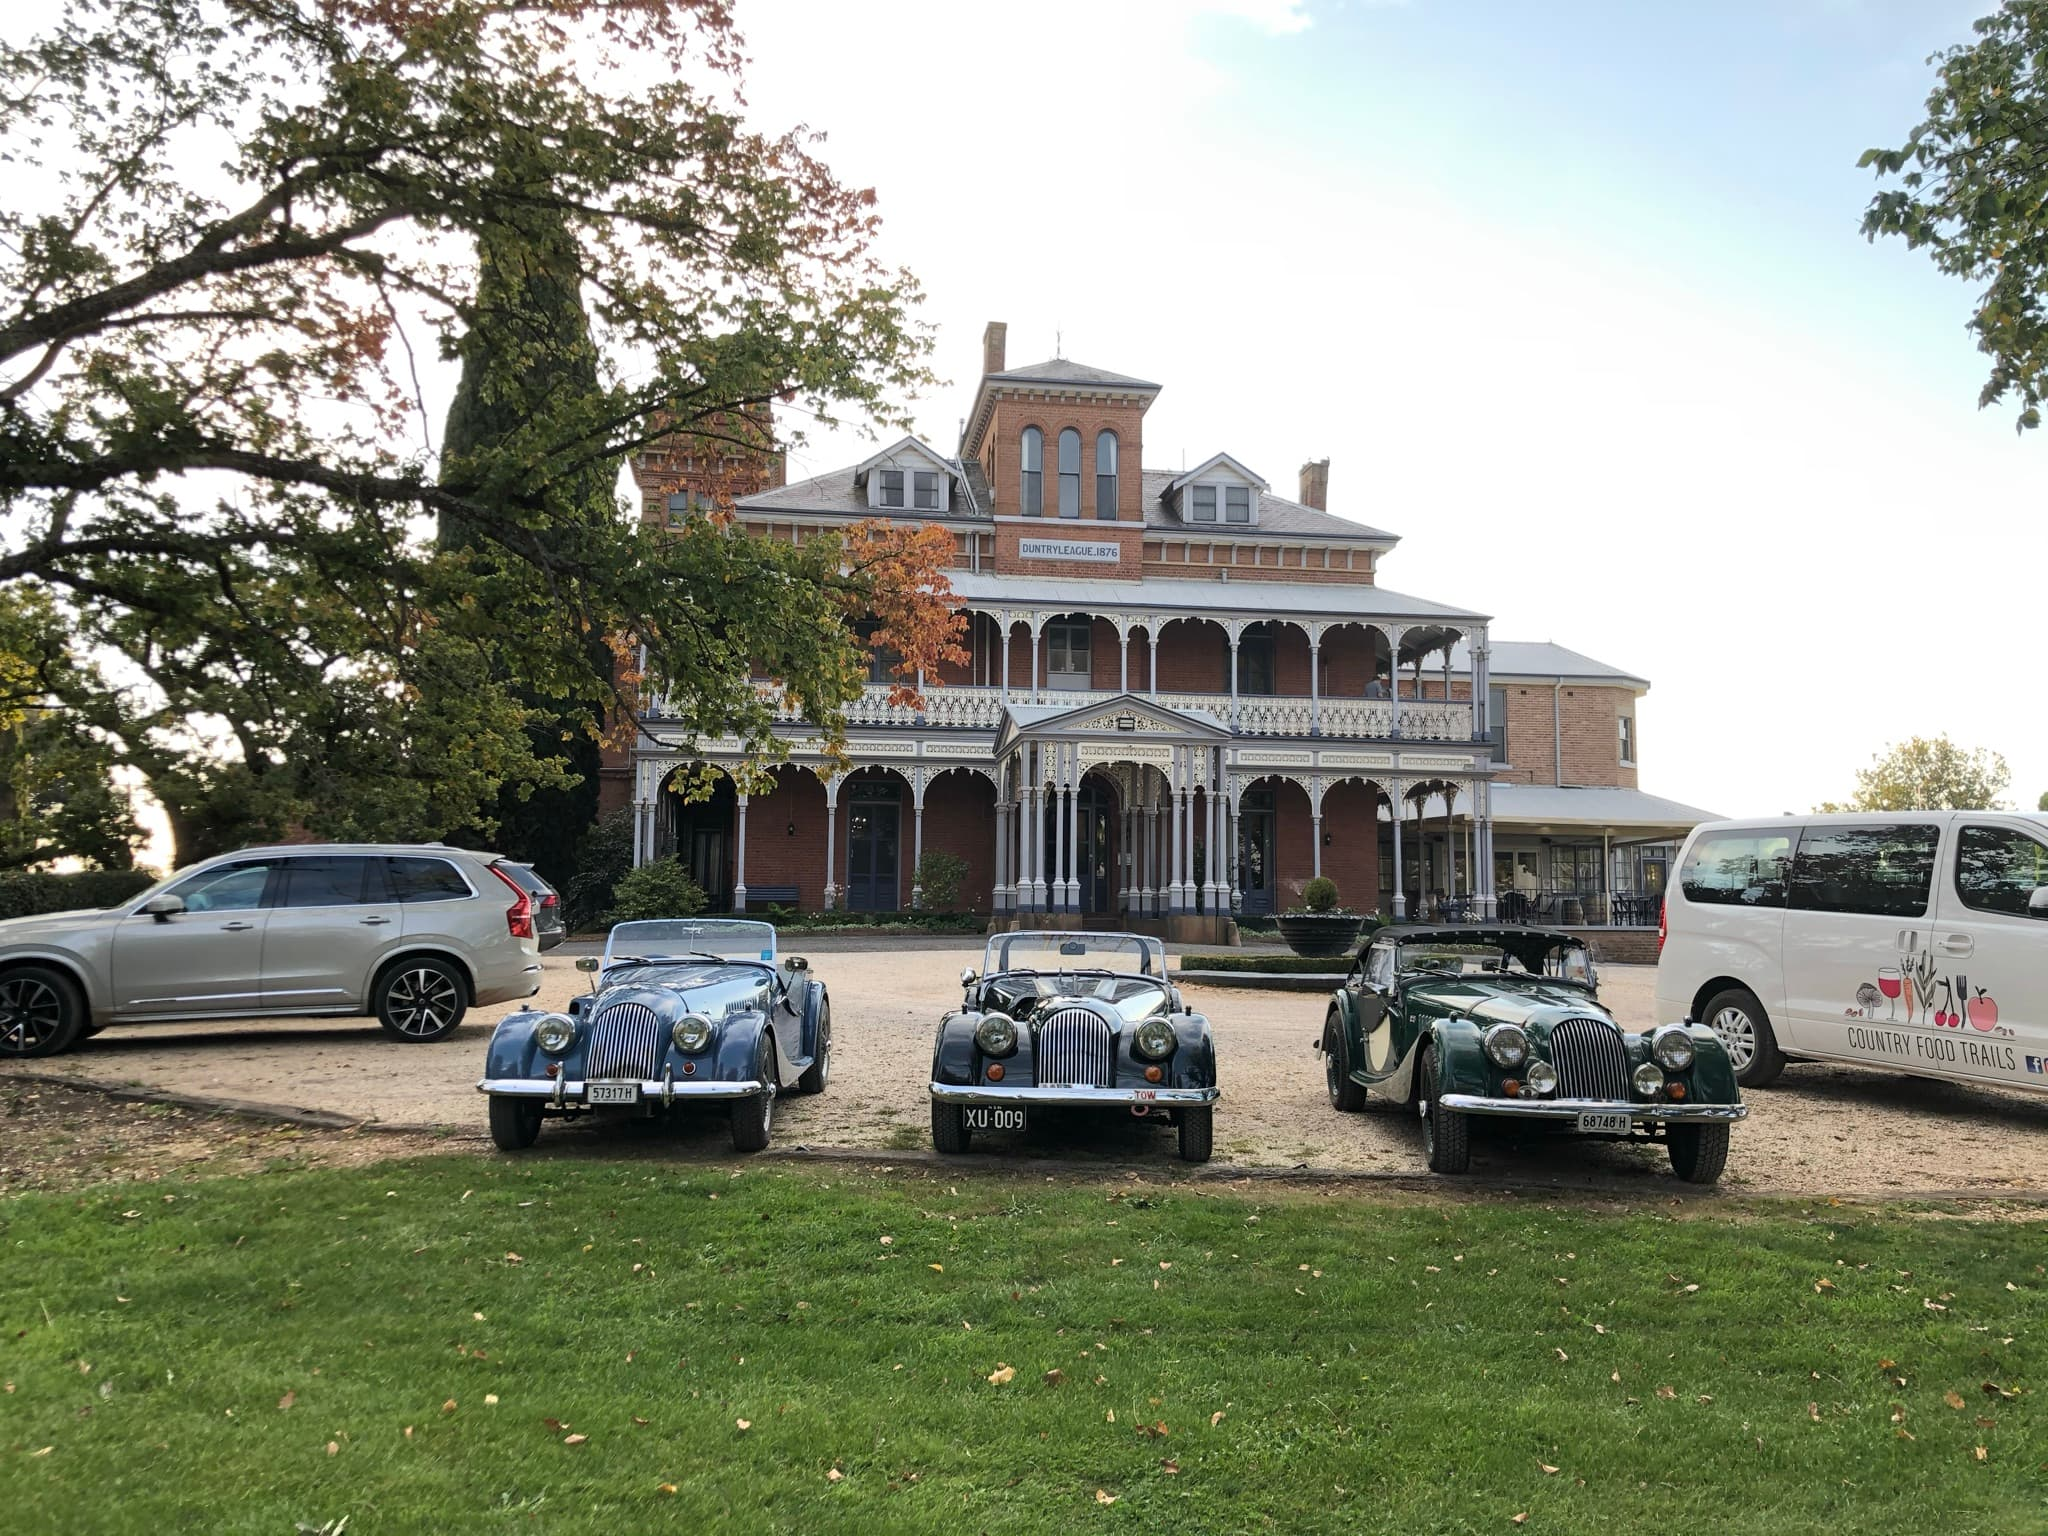 3 vintage cars out the front of the historic mansion of Duntryleague